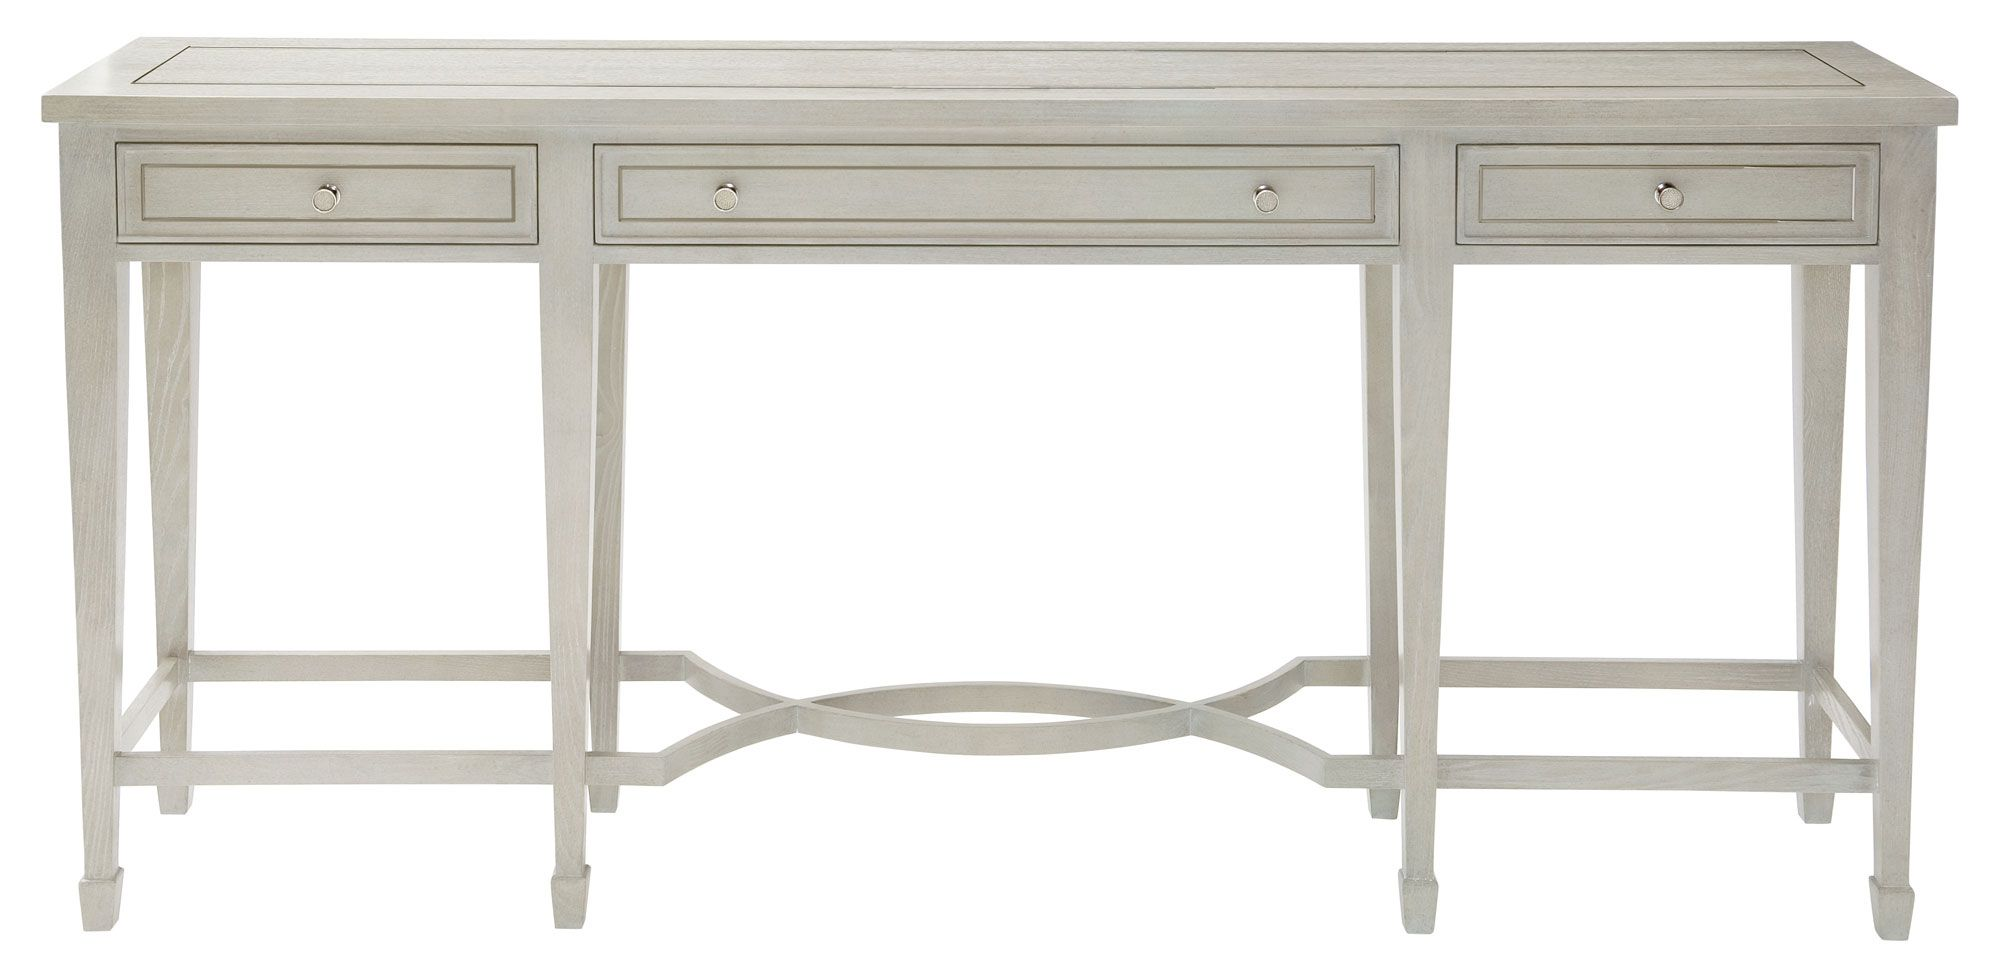 Console Table Bernhardt LW Pinterest Console tables